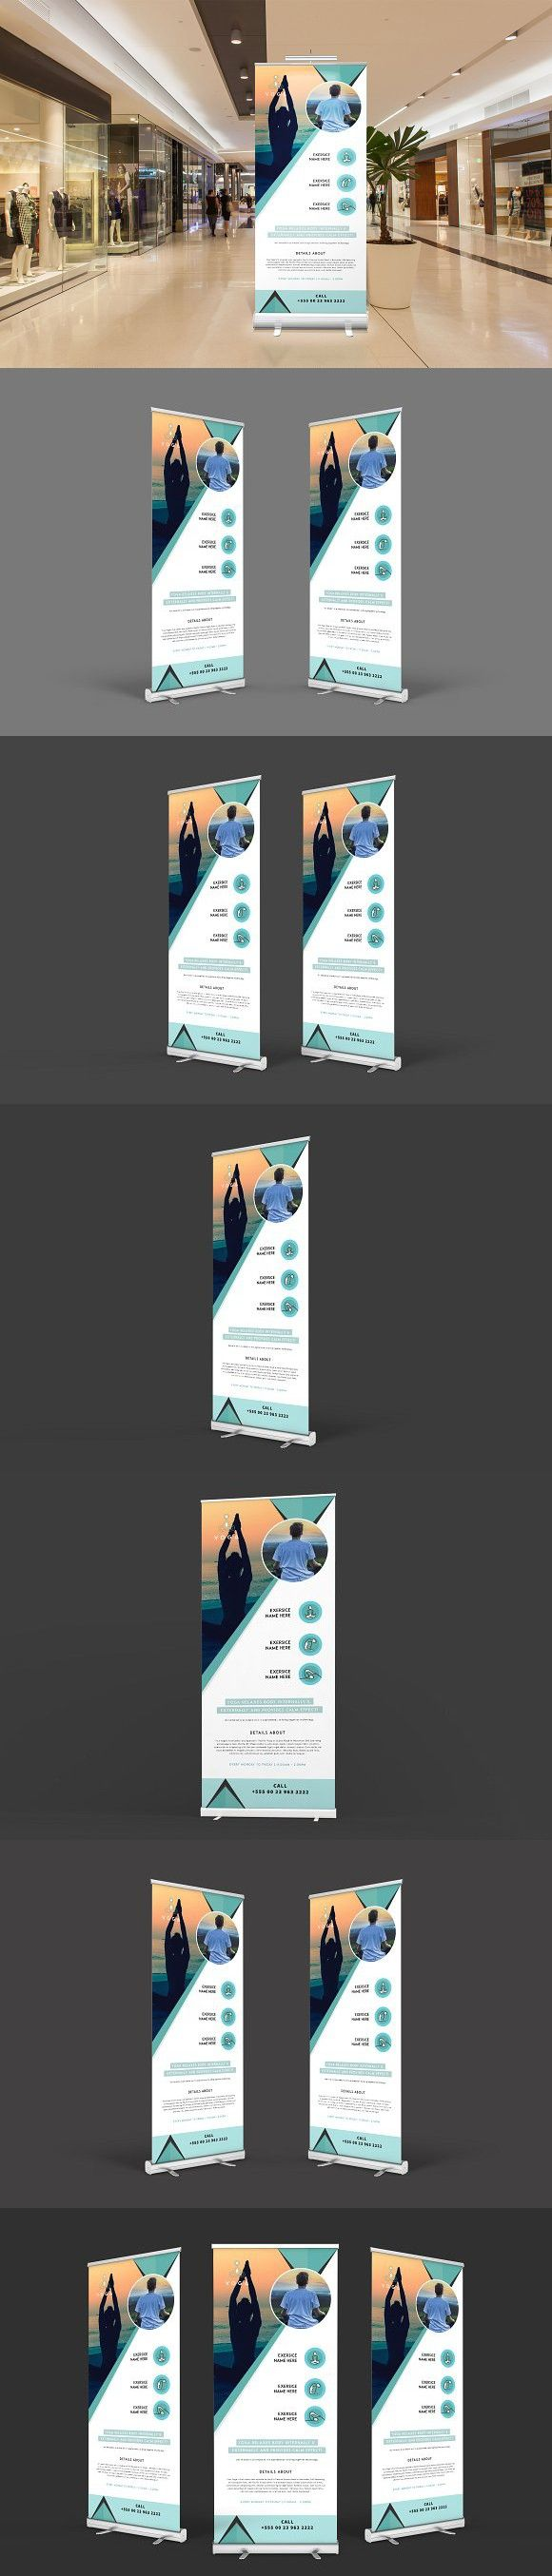 Yoga Roll-up Banner #banner #roll-up